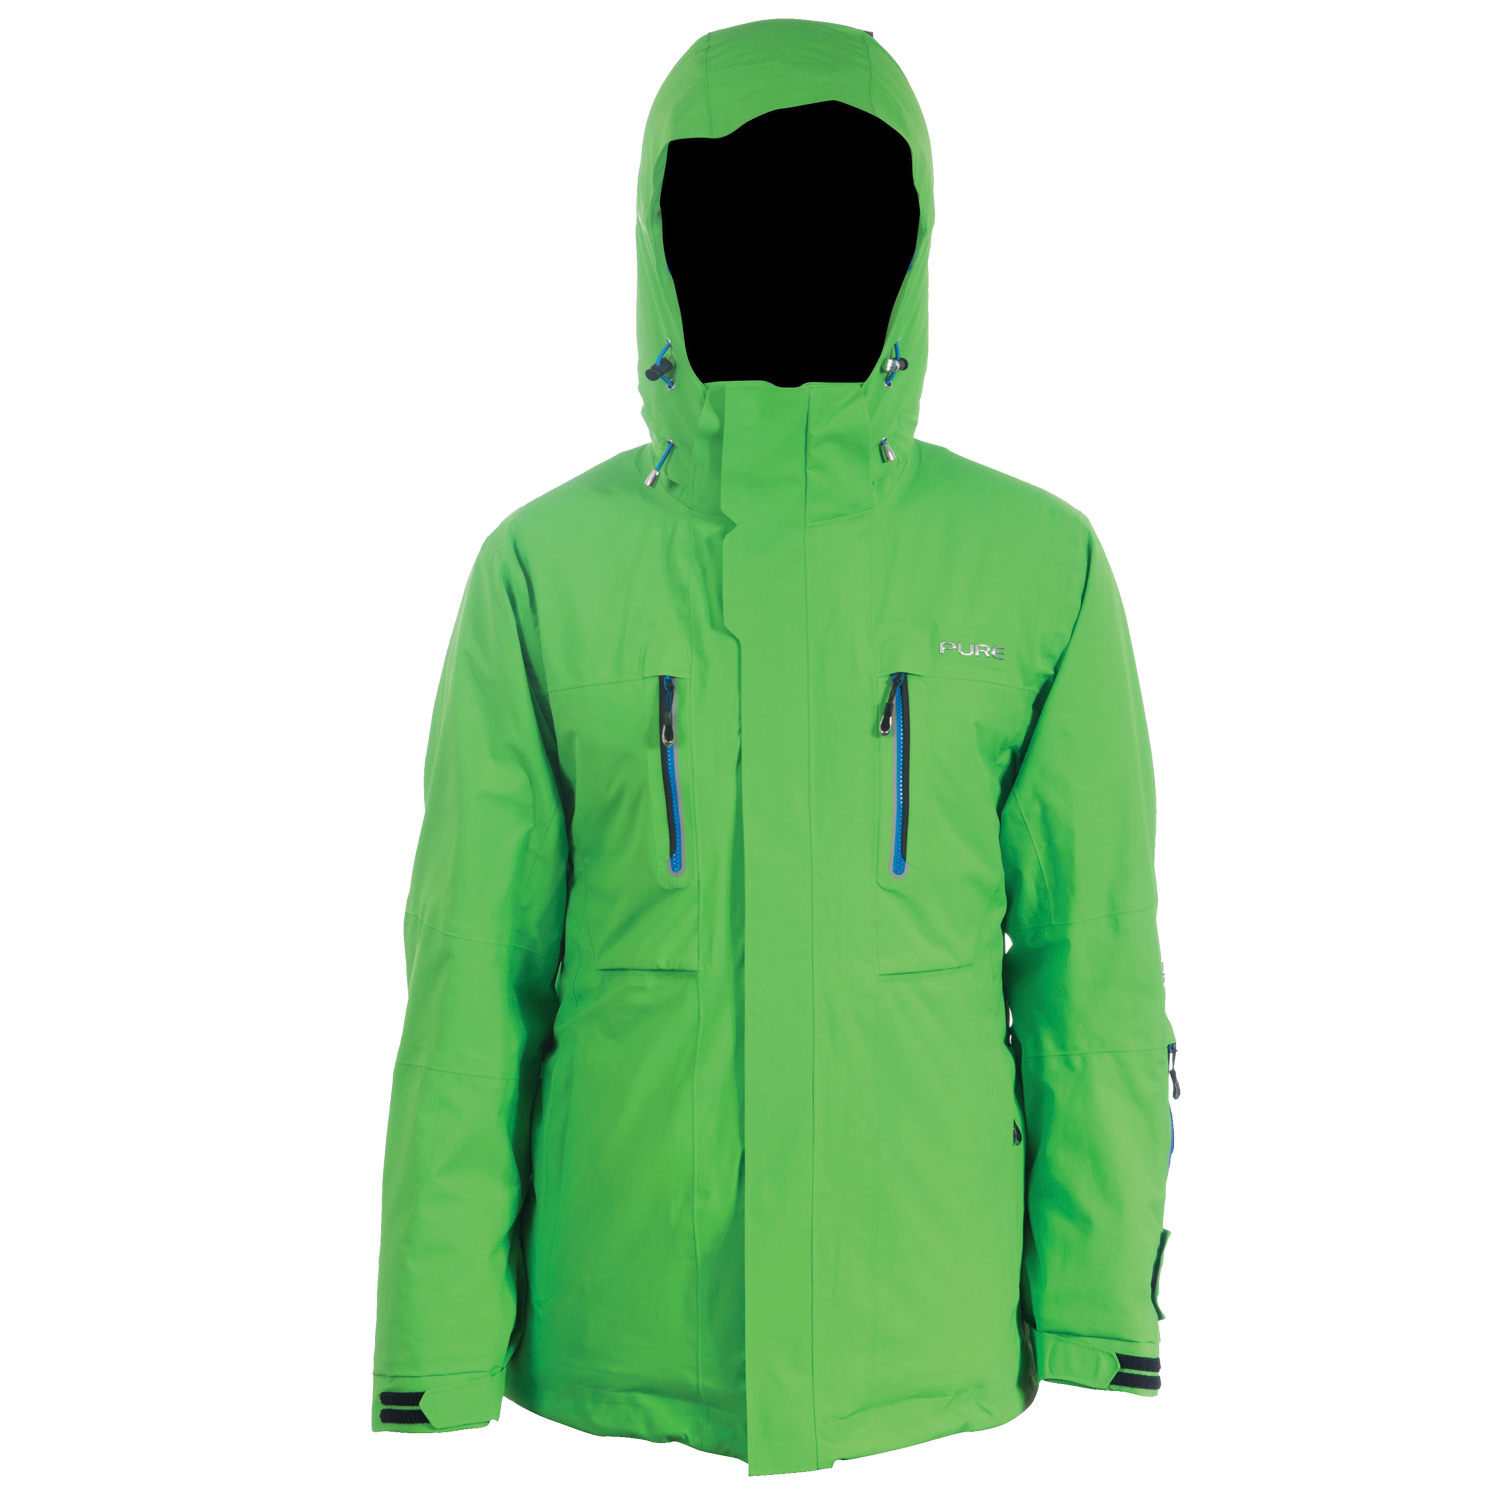 Hakuba Jacket - C.Green